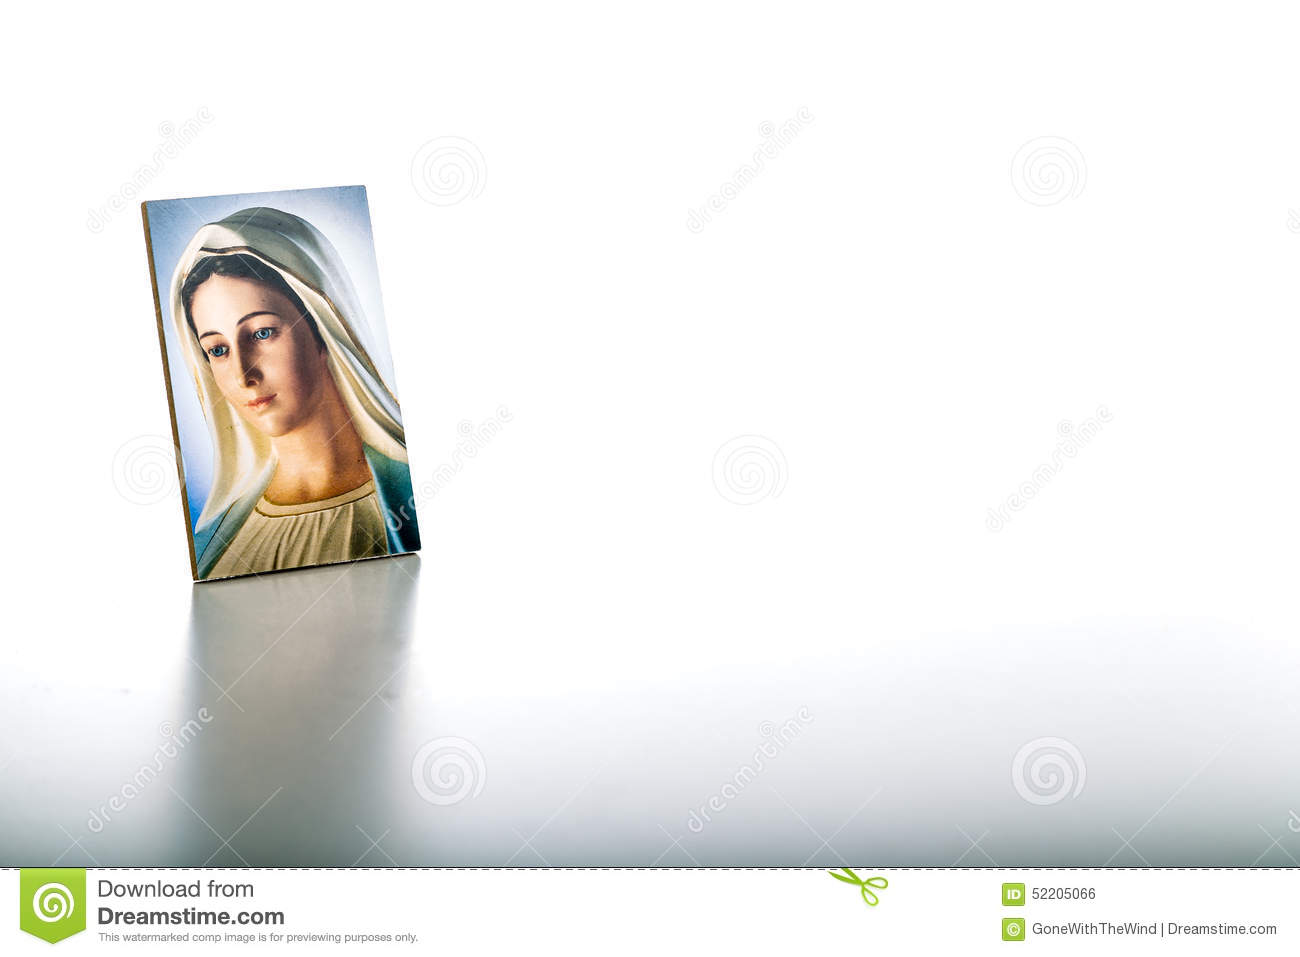 Icon of Our Lady of Medjugorje the Blessed Virgin Mary